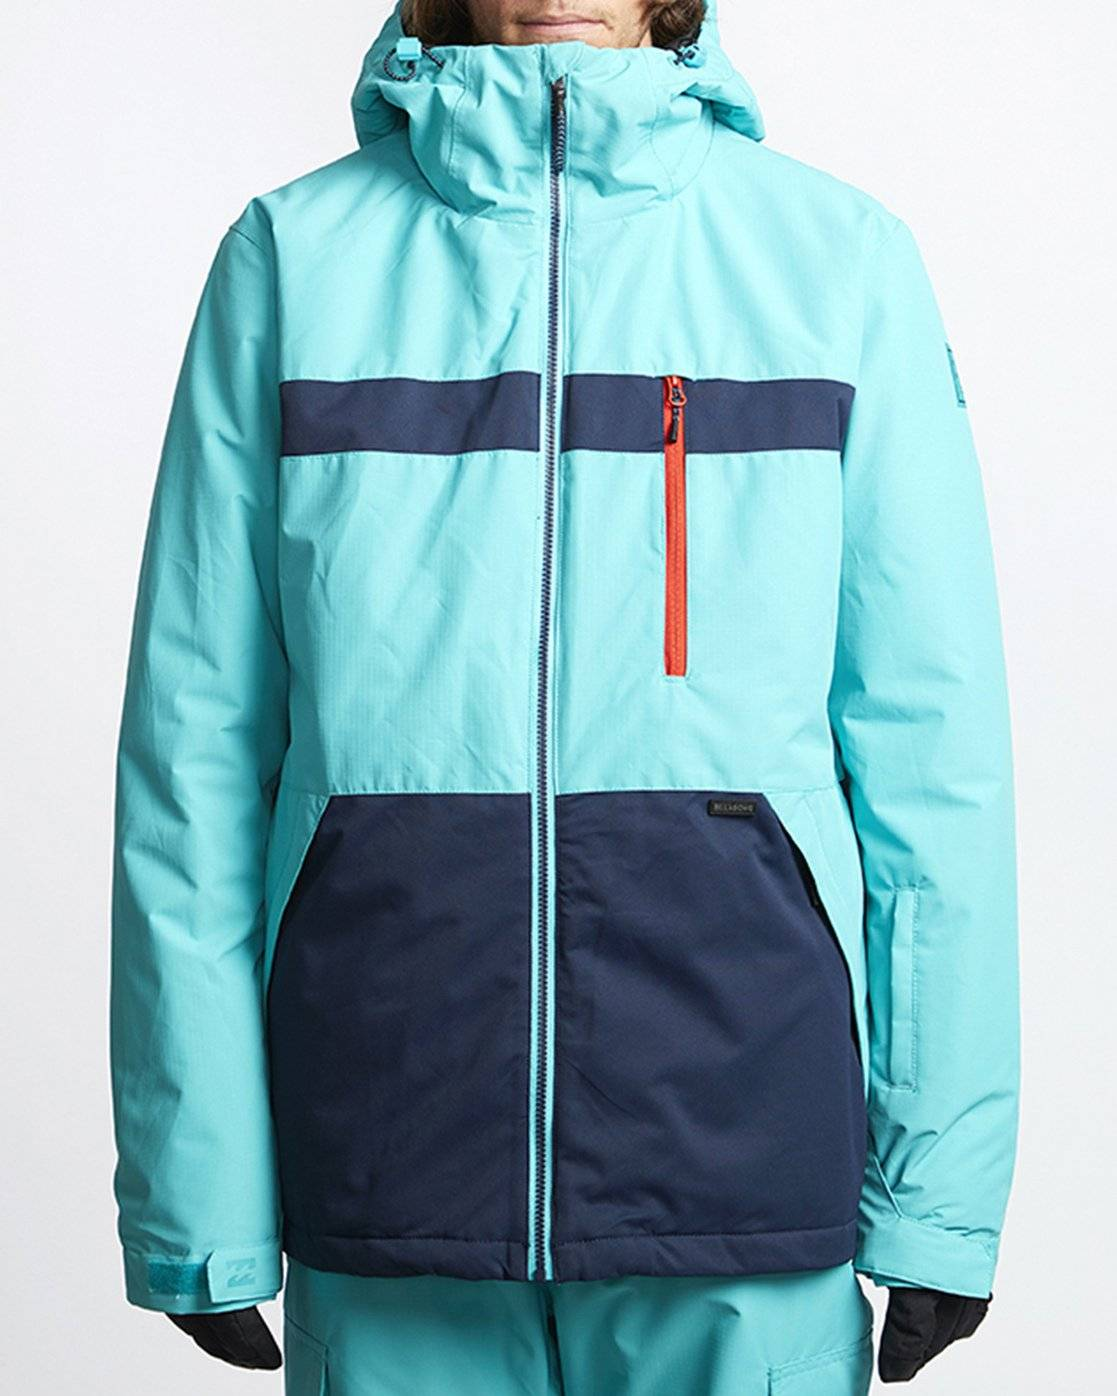 Billabong All Day Snow Jacket  - Blue - Size: Small